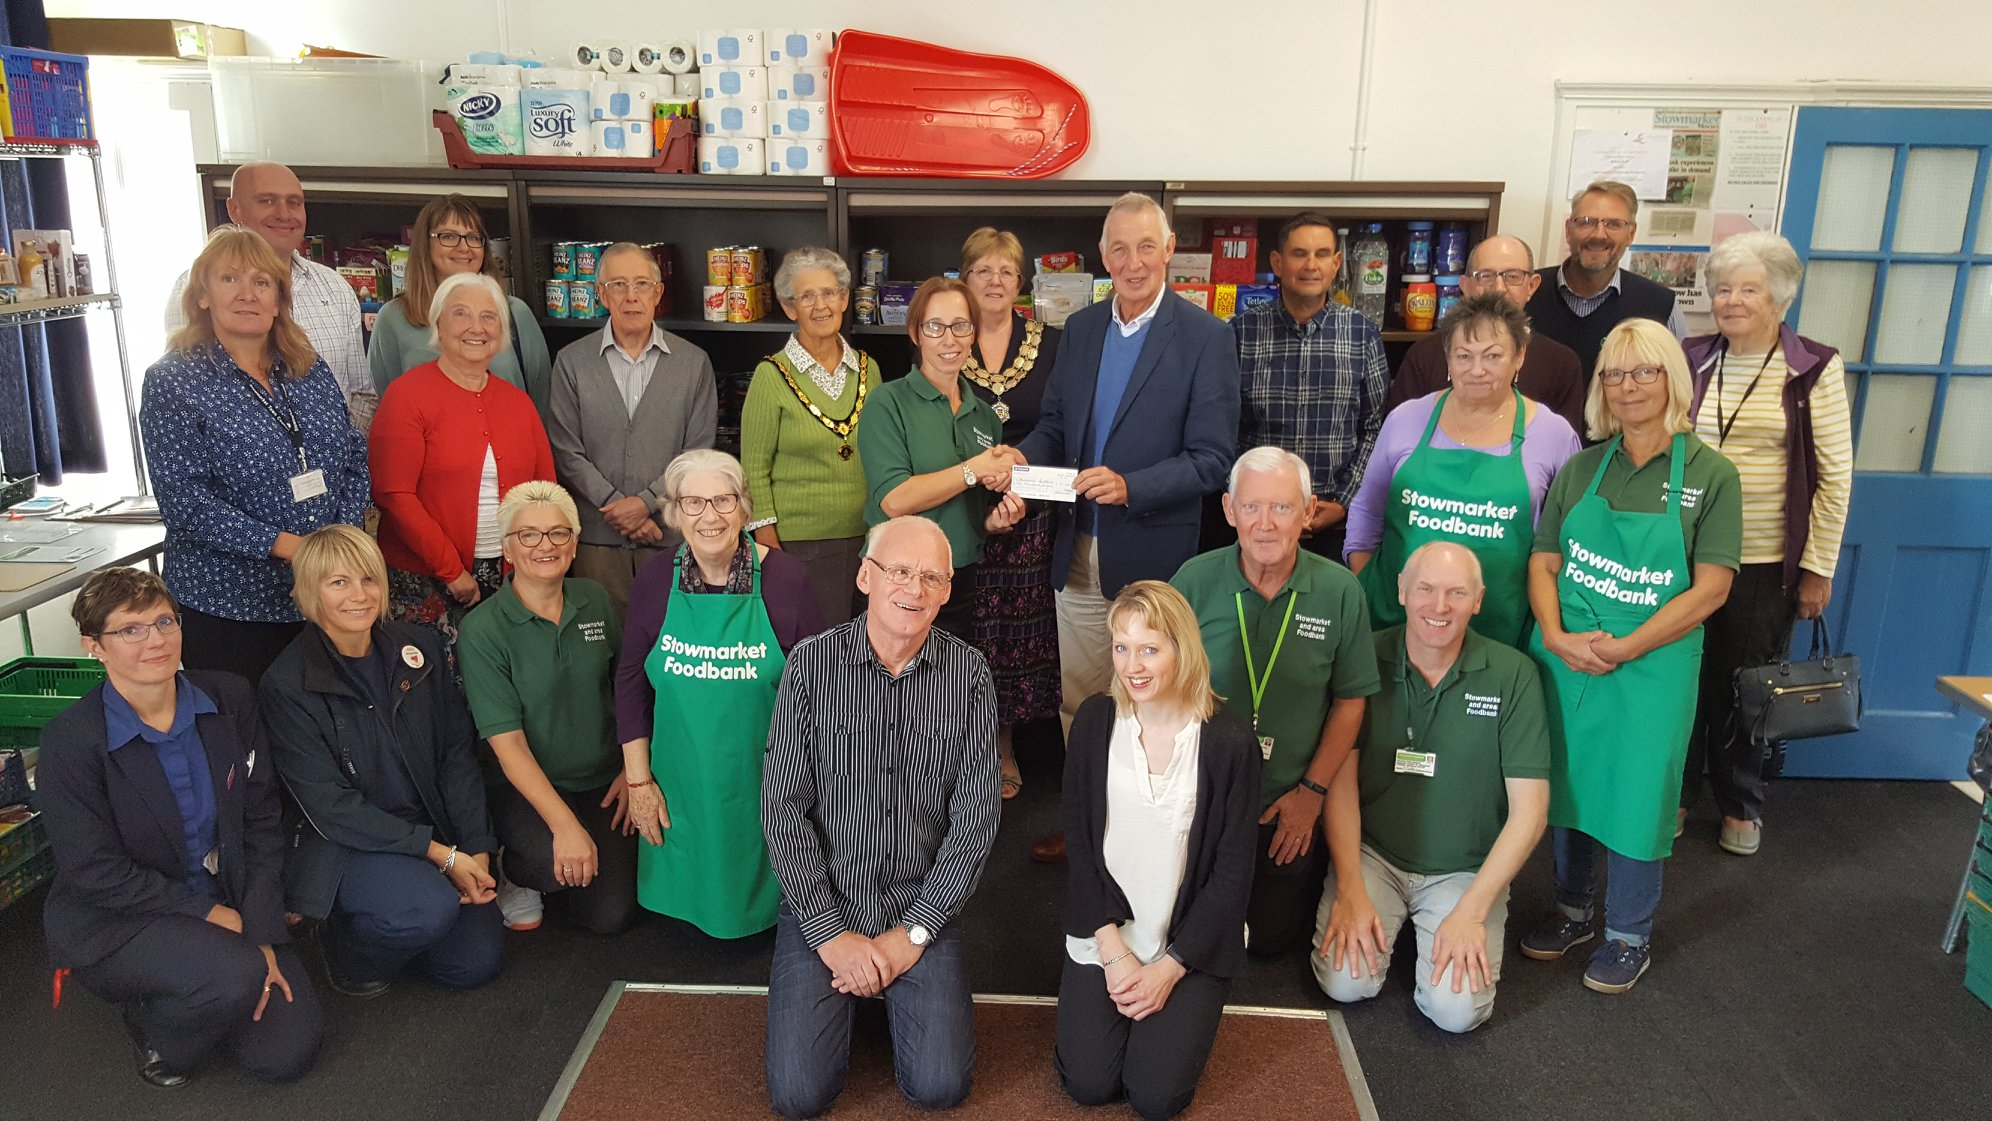 Stowmarket & area foodbank by New Life (Suffolk) fundraising photo 5